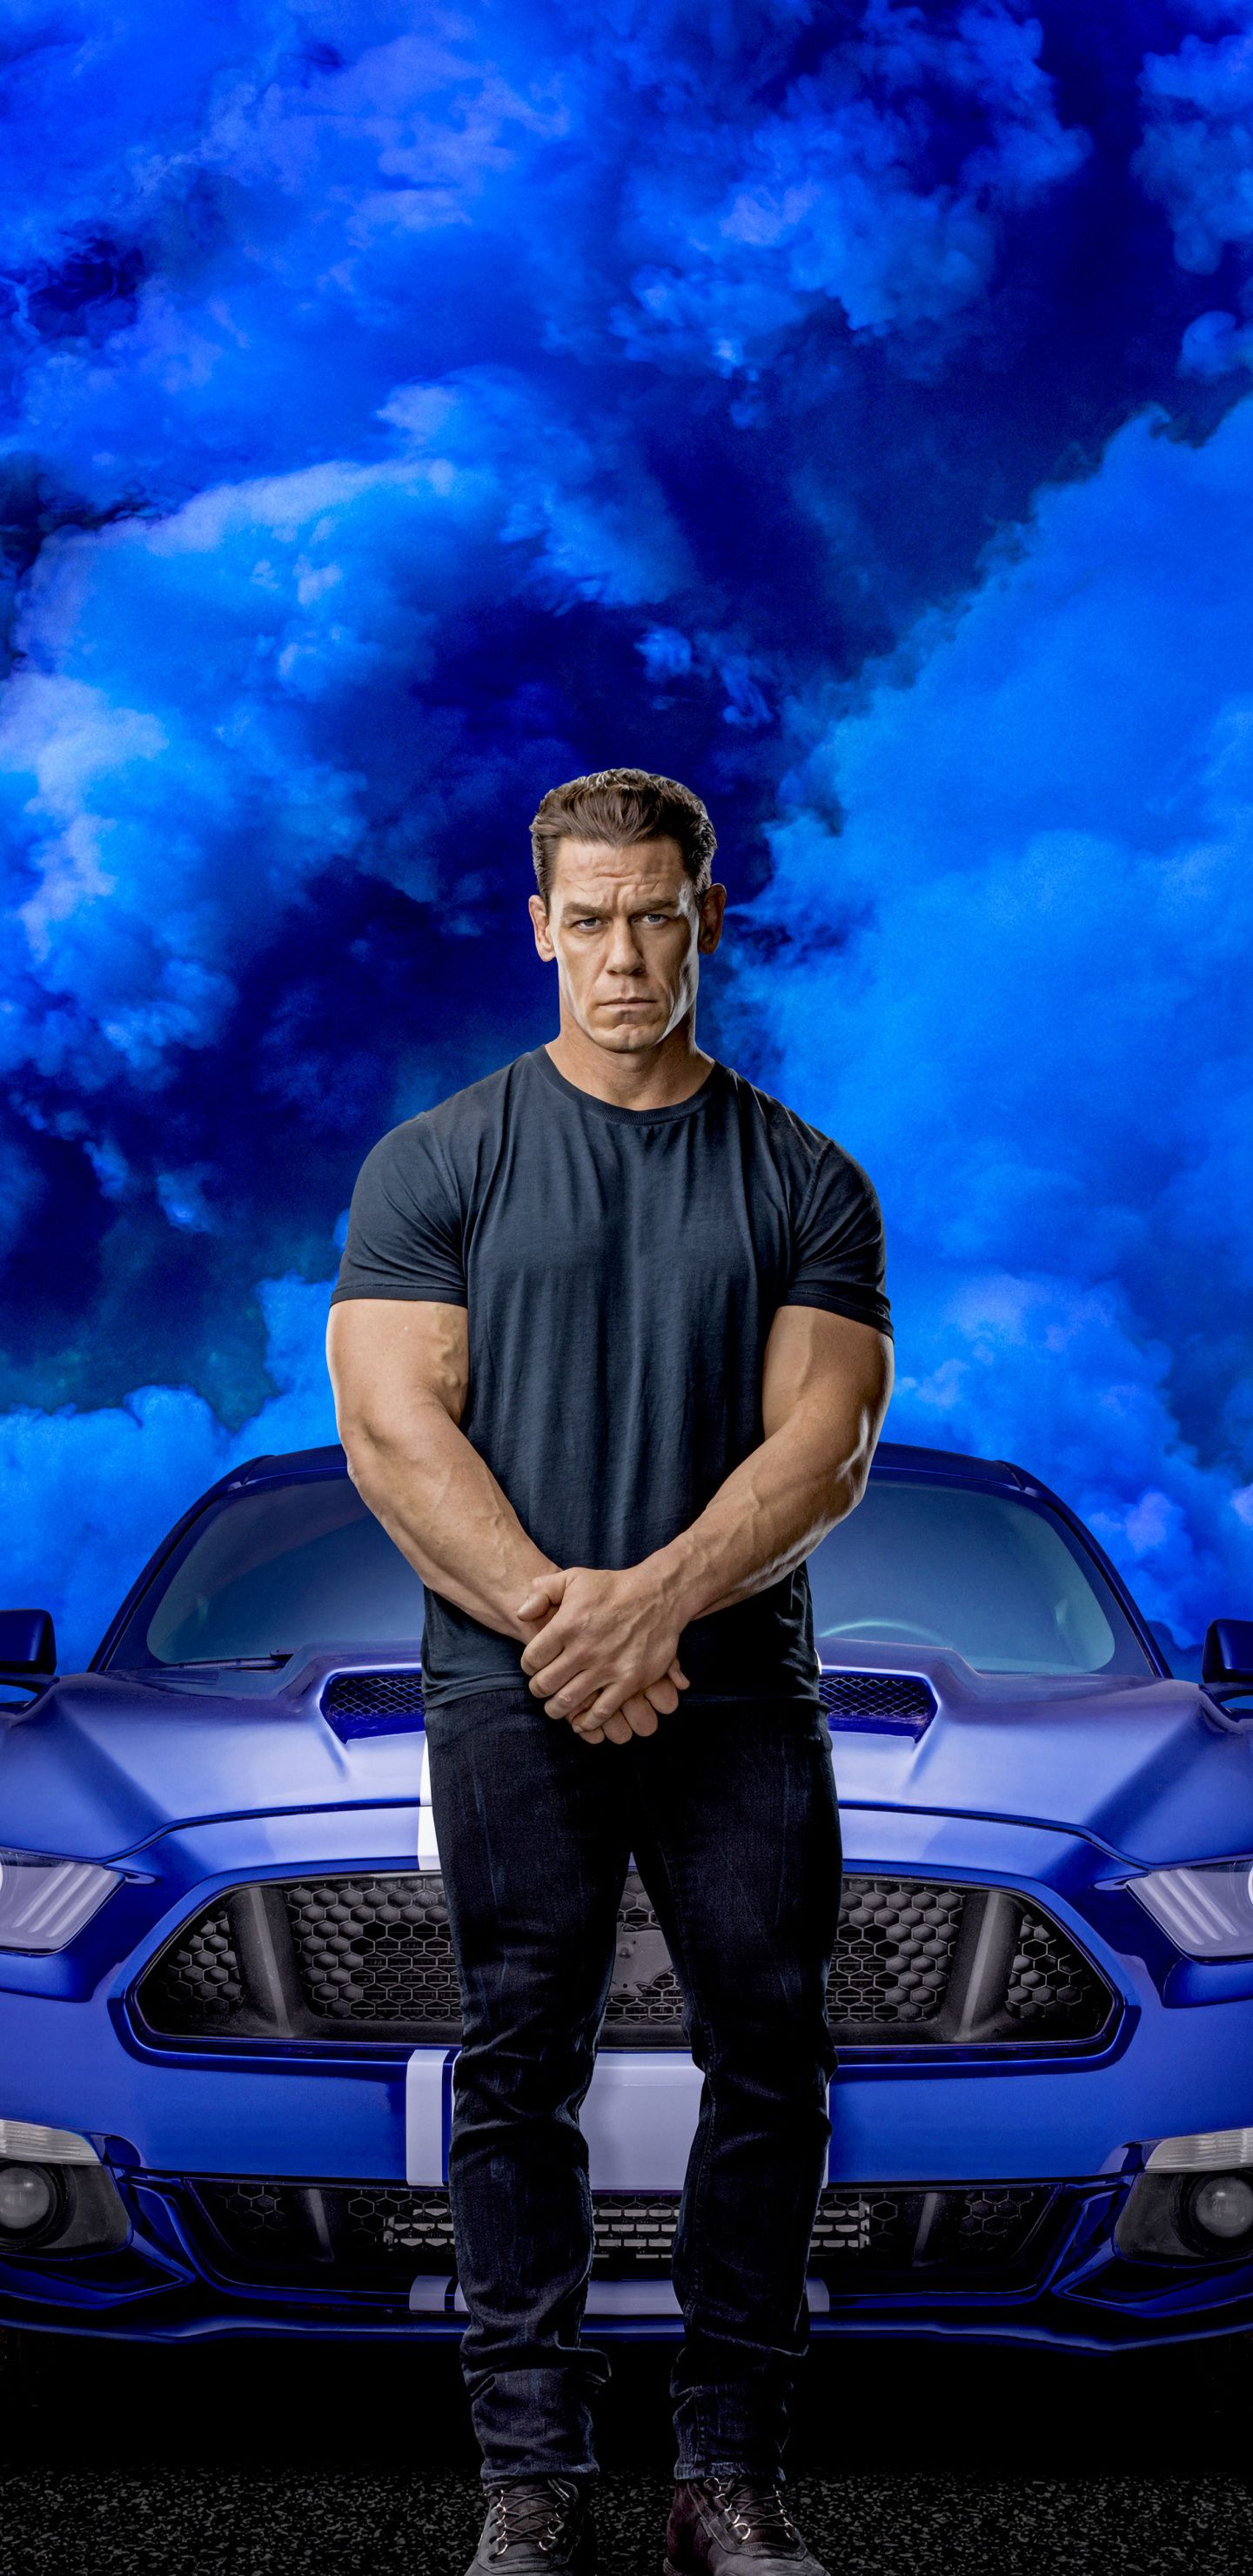 Download John Cena Fast Furious 9 2020 movie wallpaper for 1440x2960